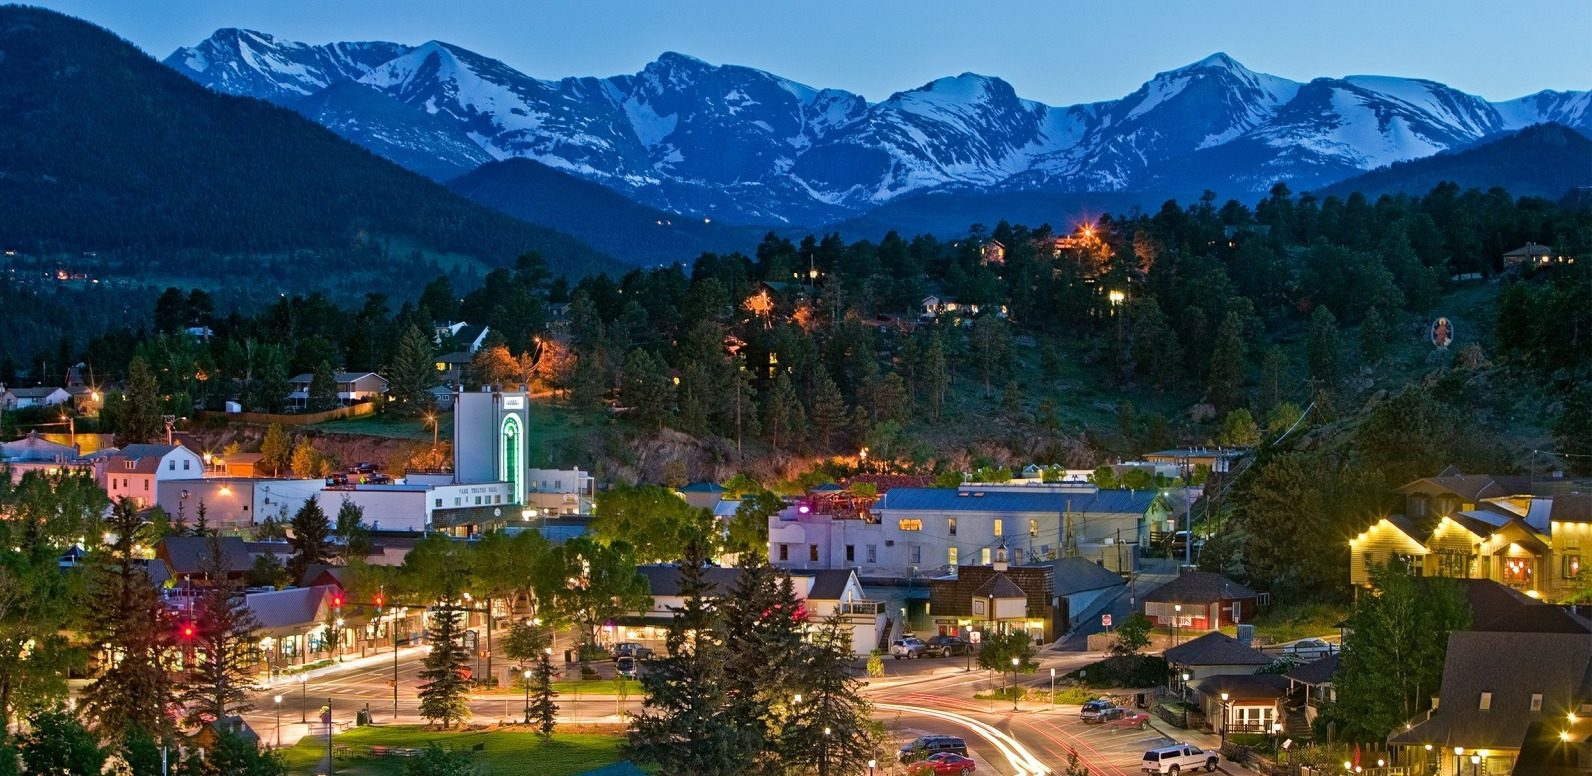 Photo of downtown Estes Park at twilight.